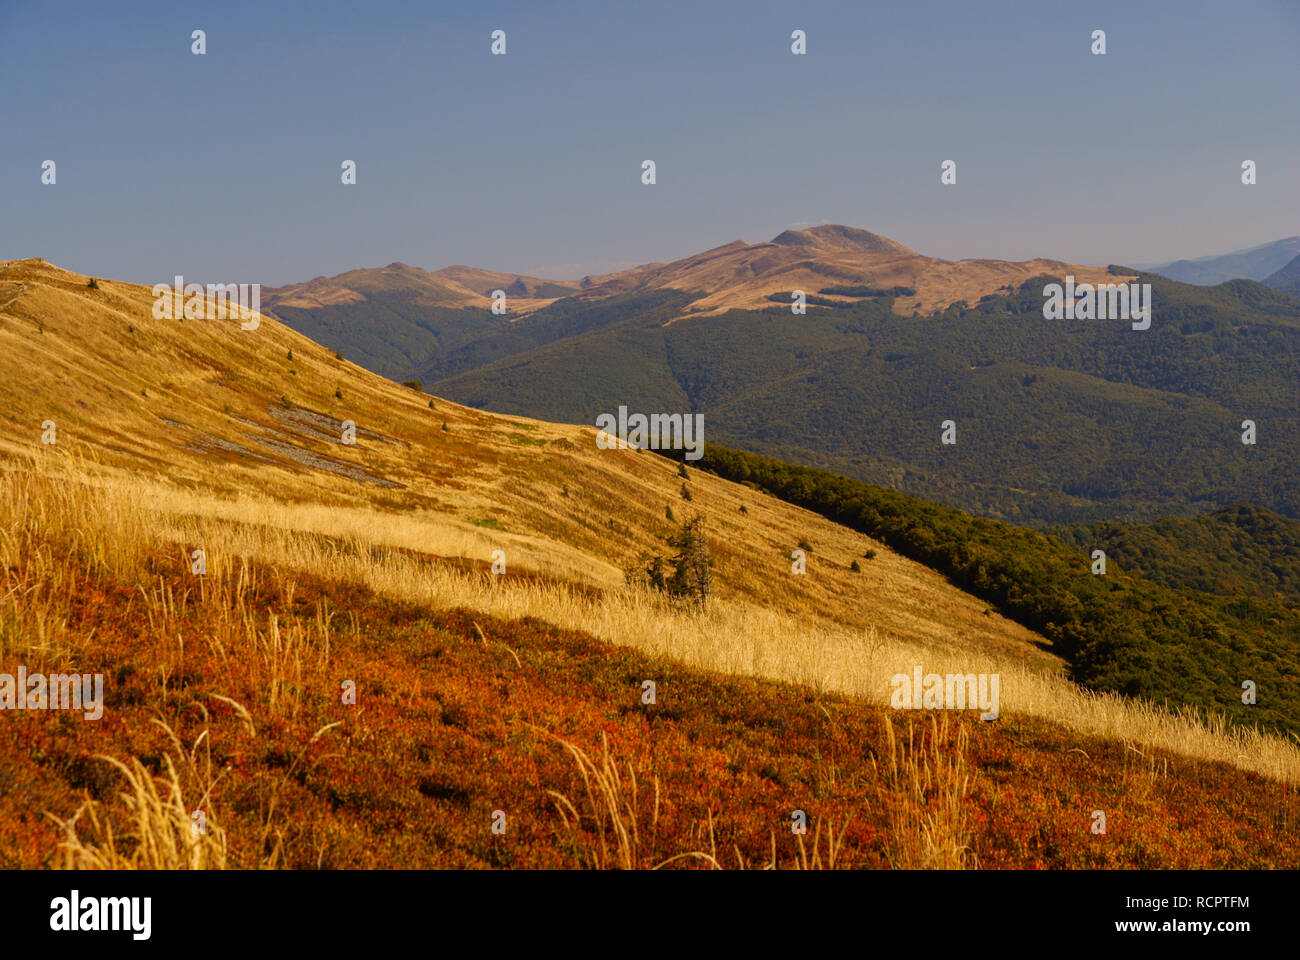 Amazing autumn colors in the Bieszczady Mountains. Poland - Stock Image